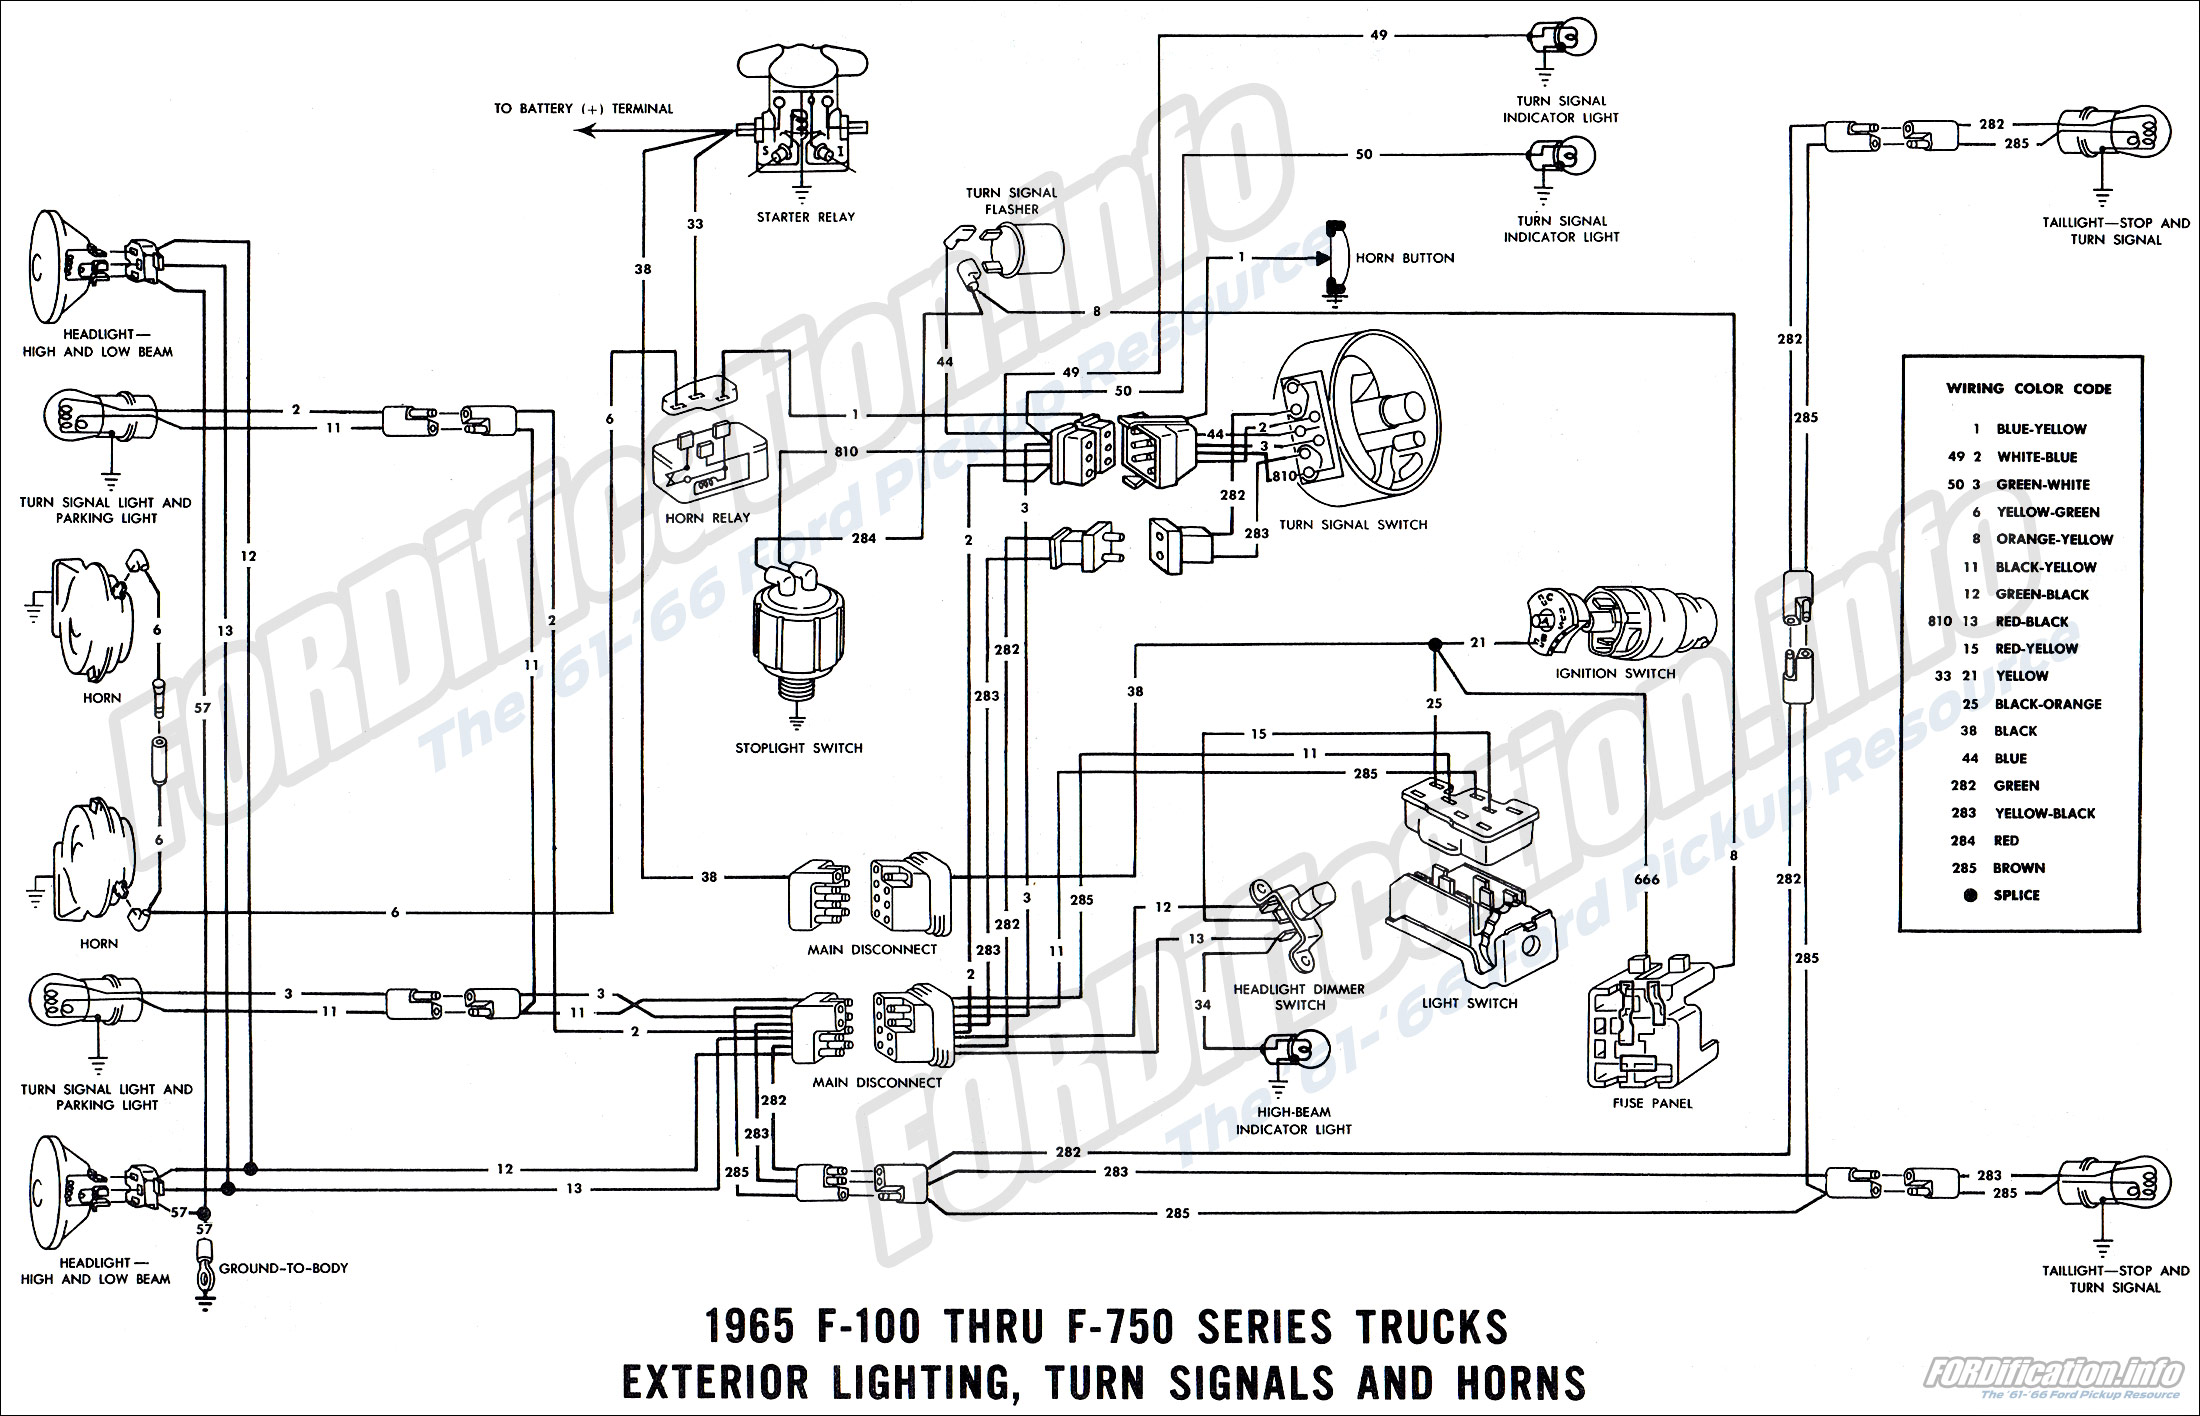 wiring diagram for 1966 ford truck wiring diagram toyota ignition coil wiring diagram 1973 ford coil wiring diagram #6